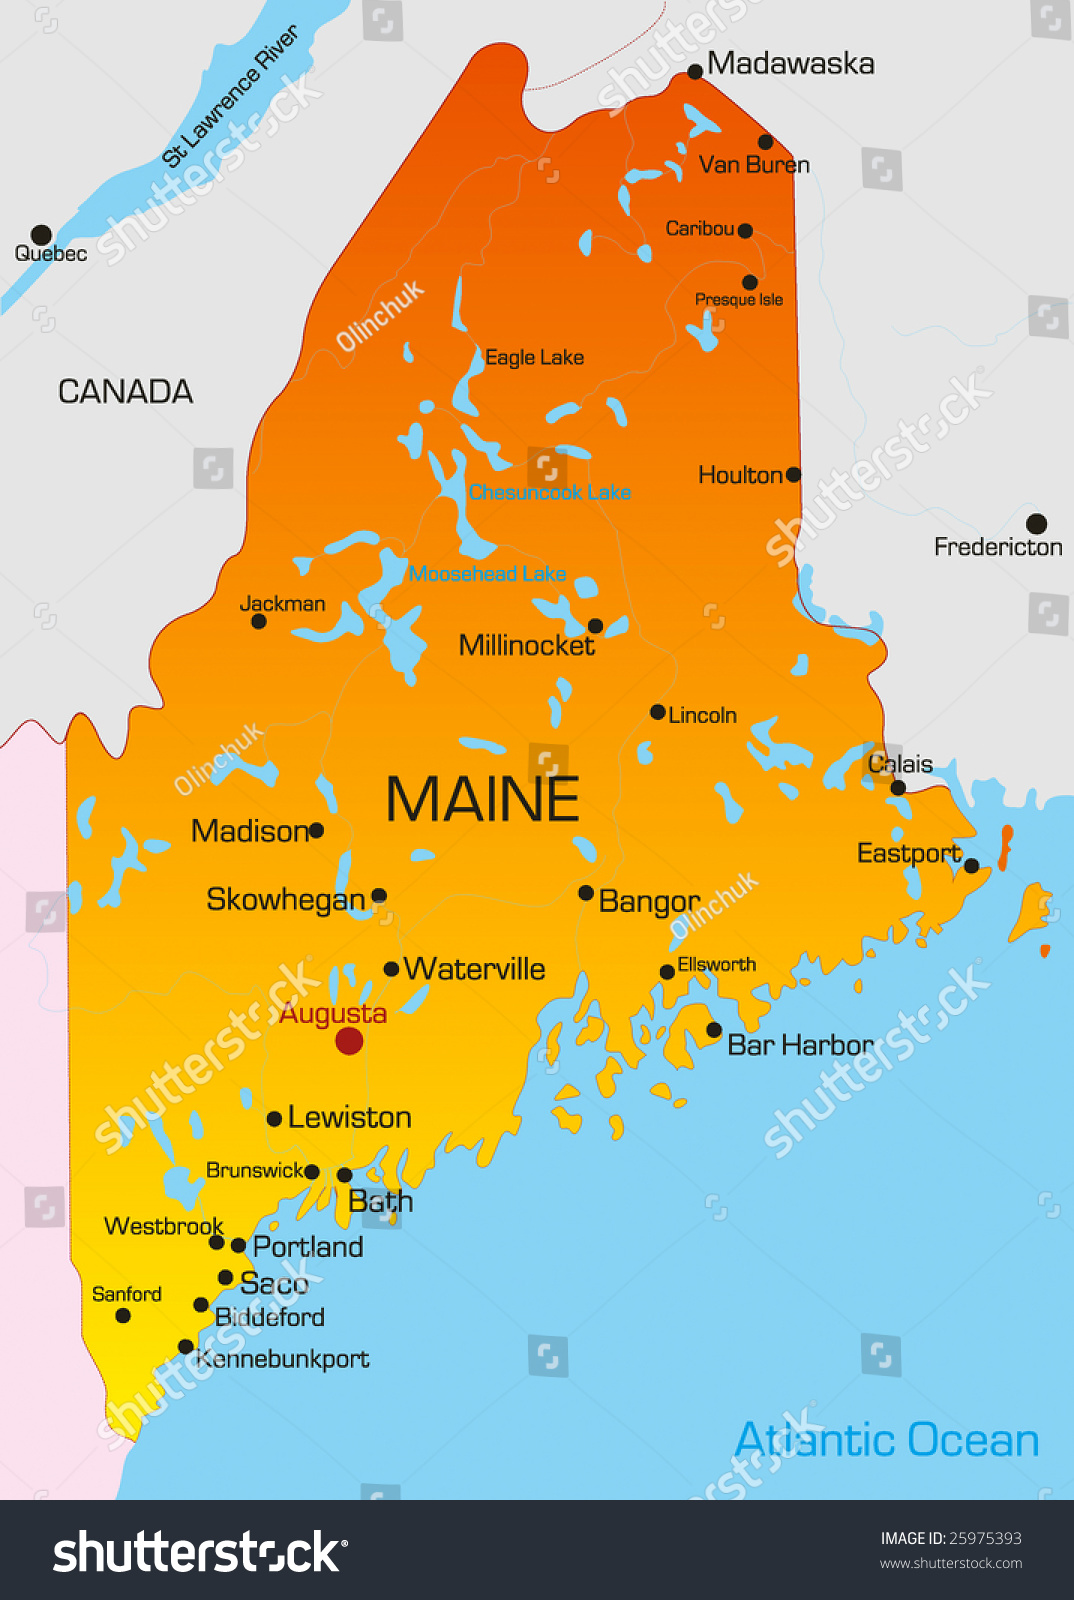 Vector Color Map Maine State Usa Stock Vector Shutterstock - Maine state usa map